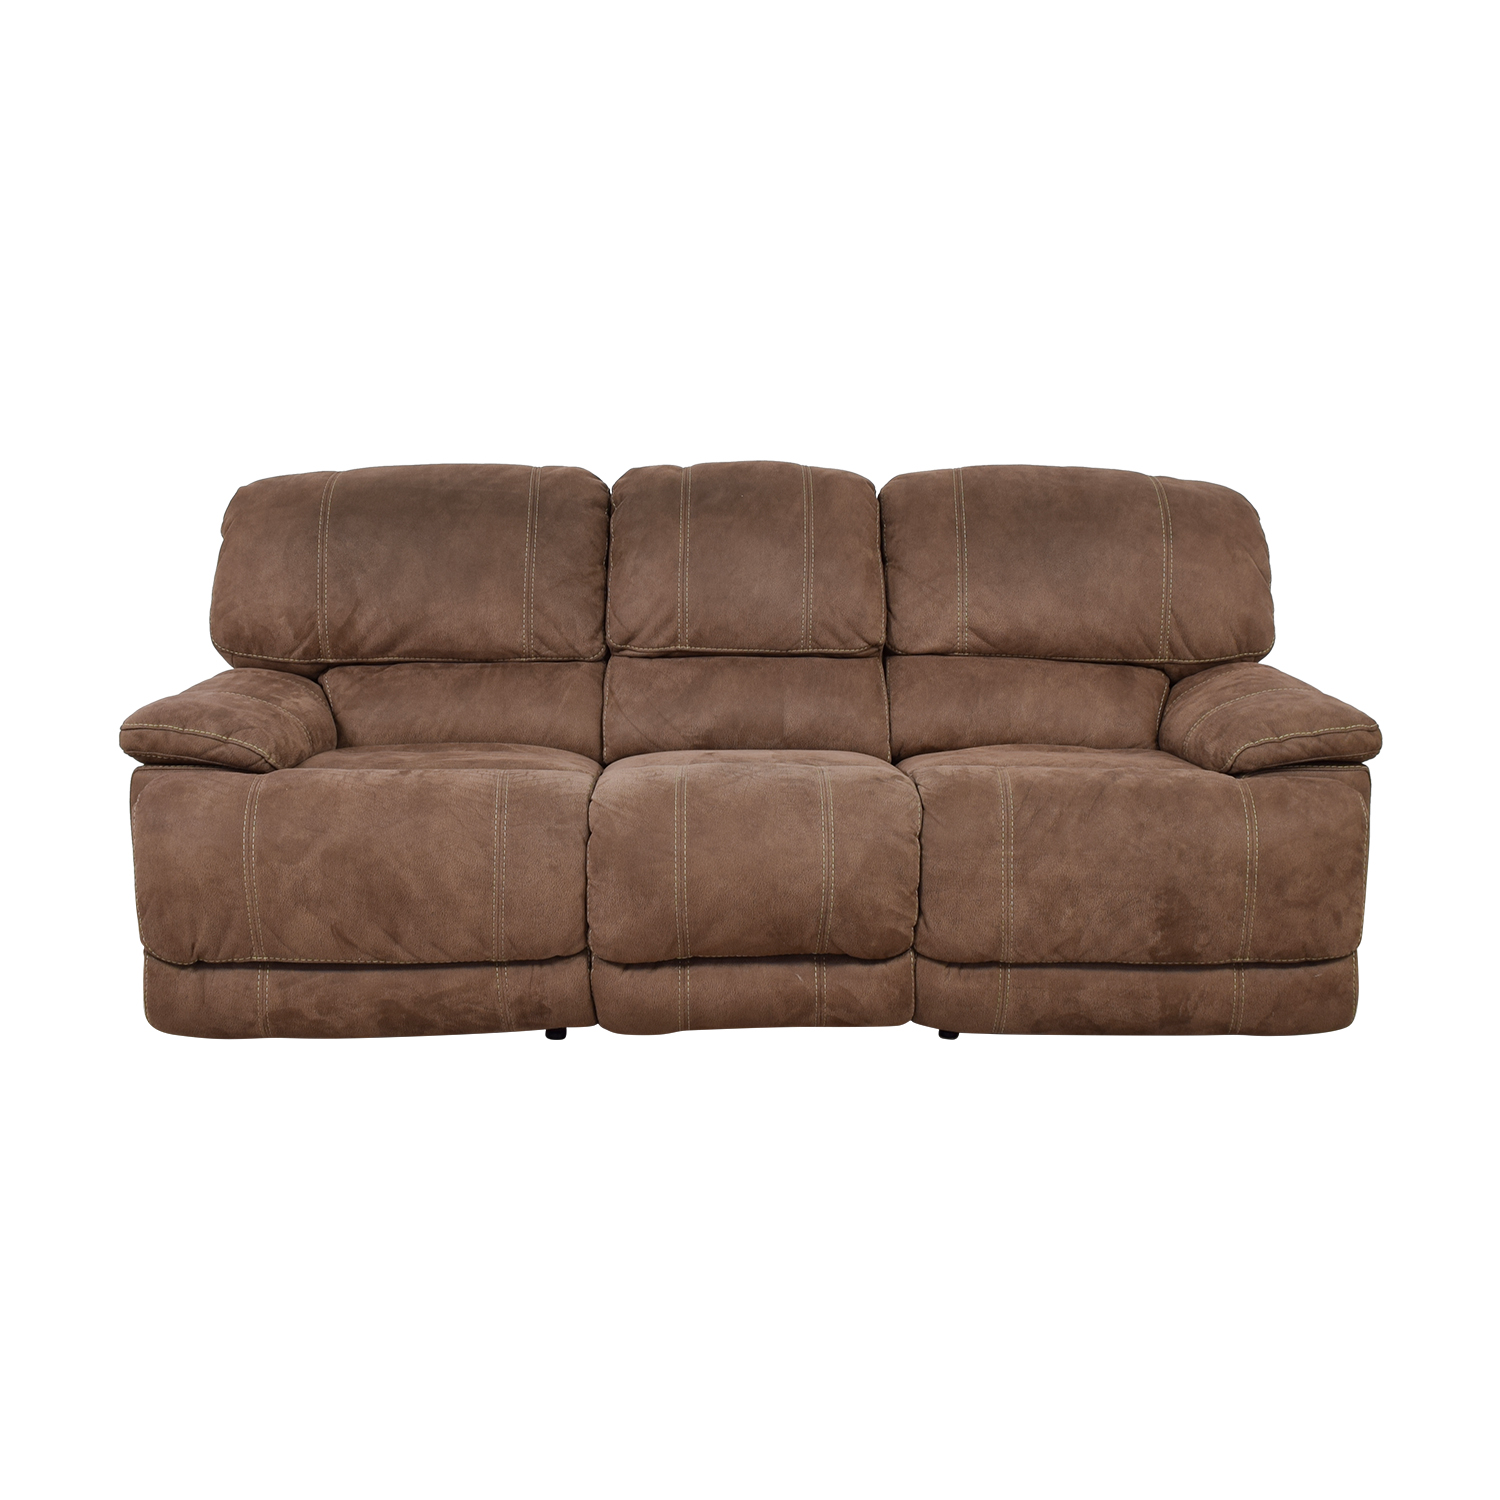 Brown Three-Cushion Recliner Sofa Chairs